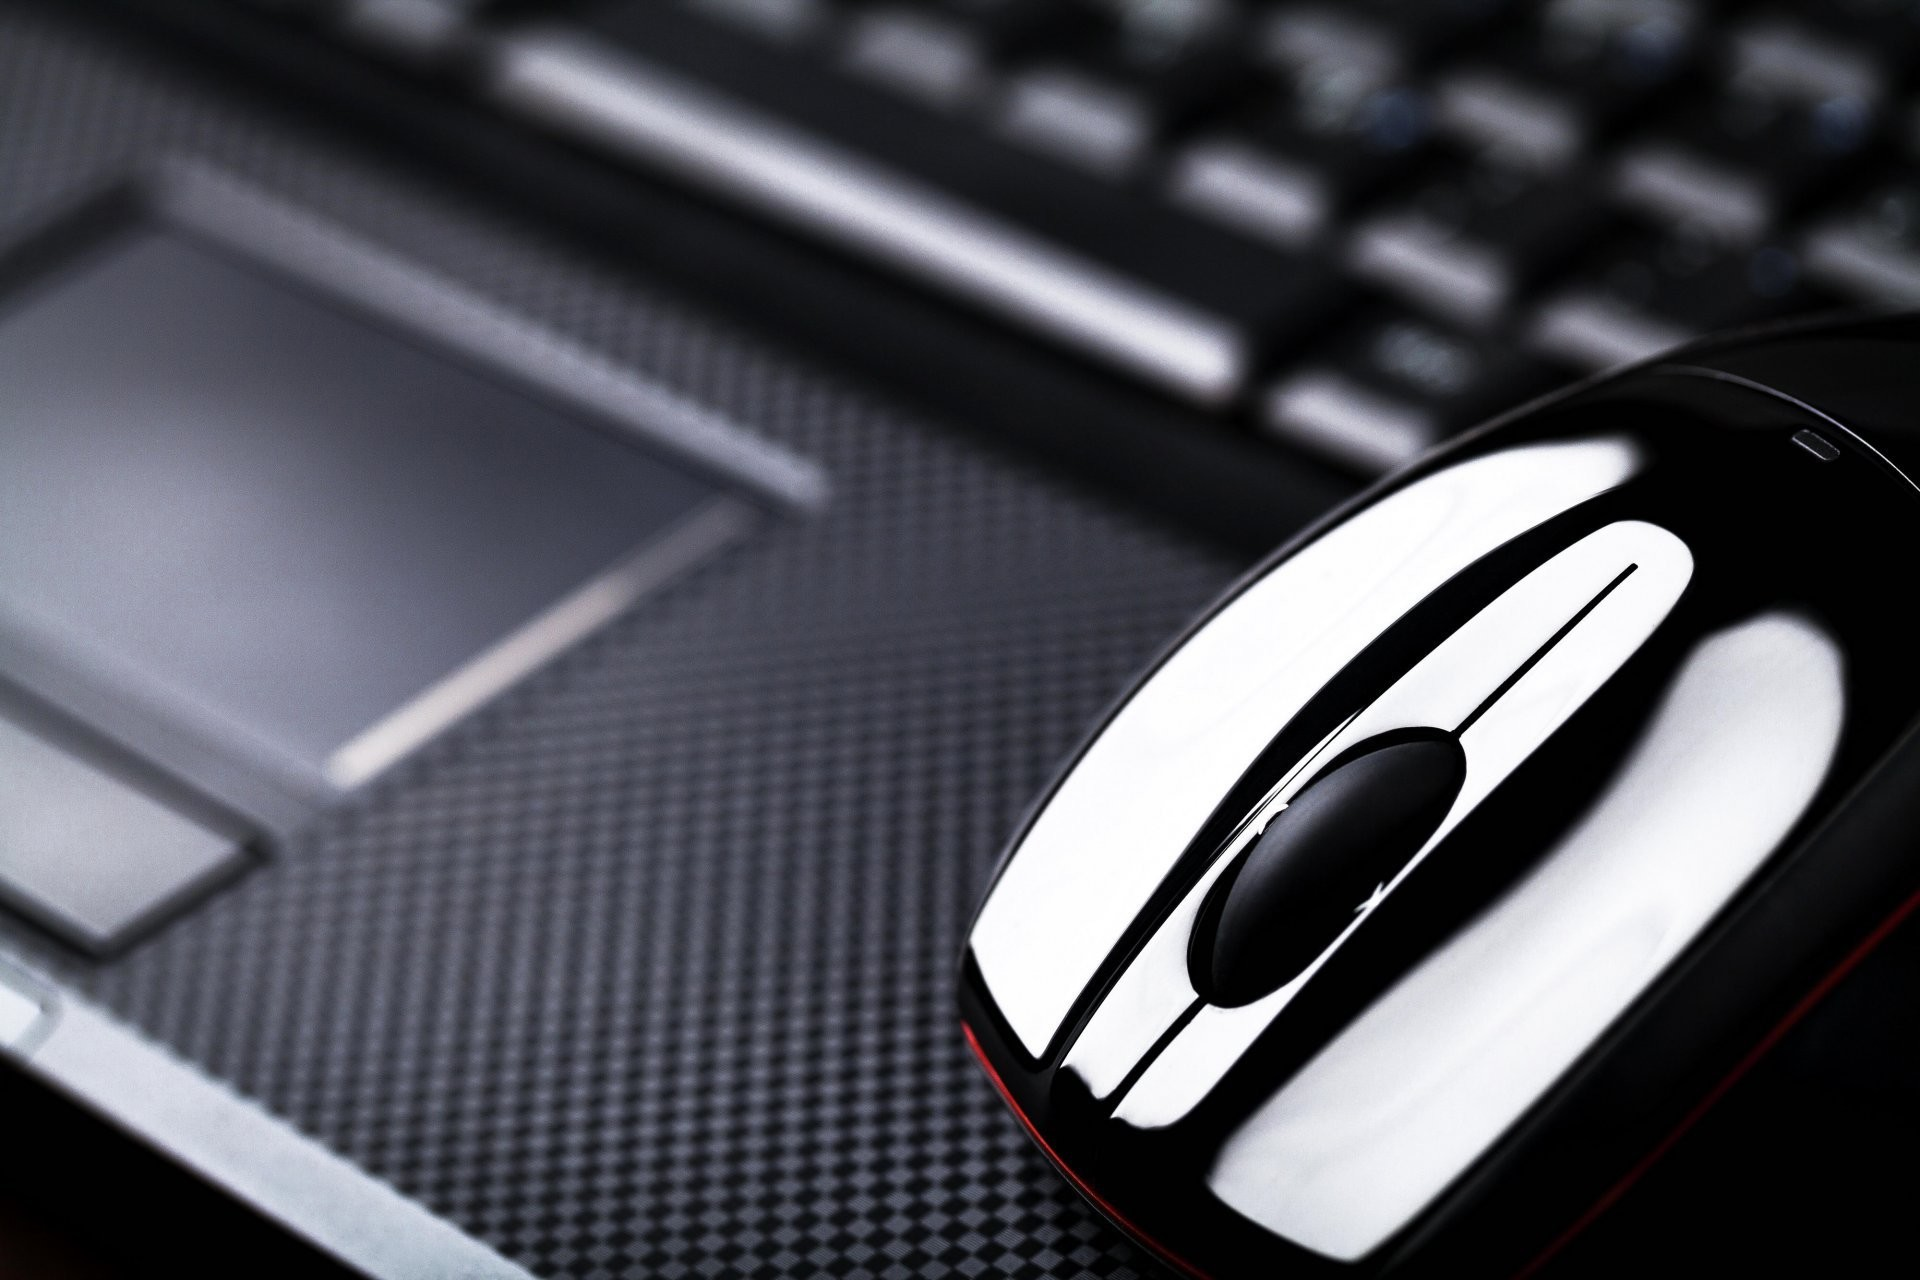 hi-tech technology computer mouse mouse notebook laptop notebook touchpad  touchpad blur bokeh close up